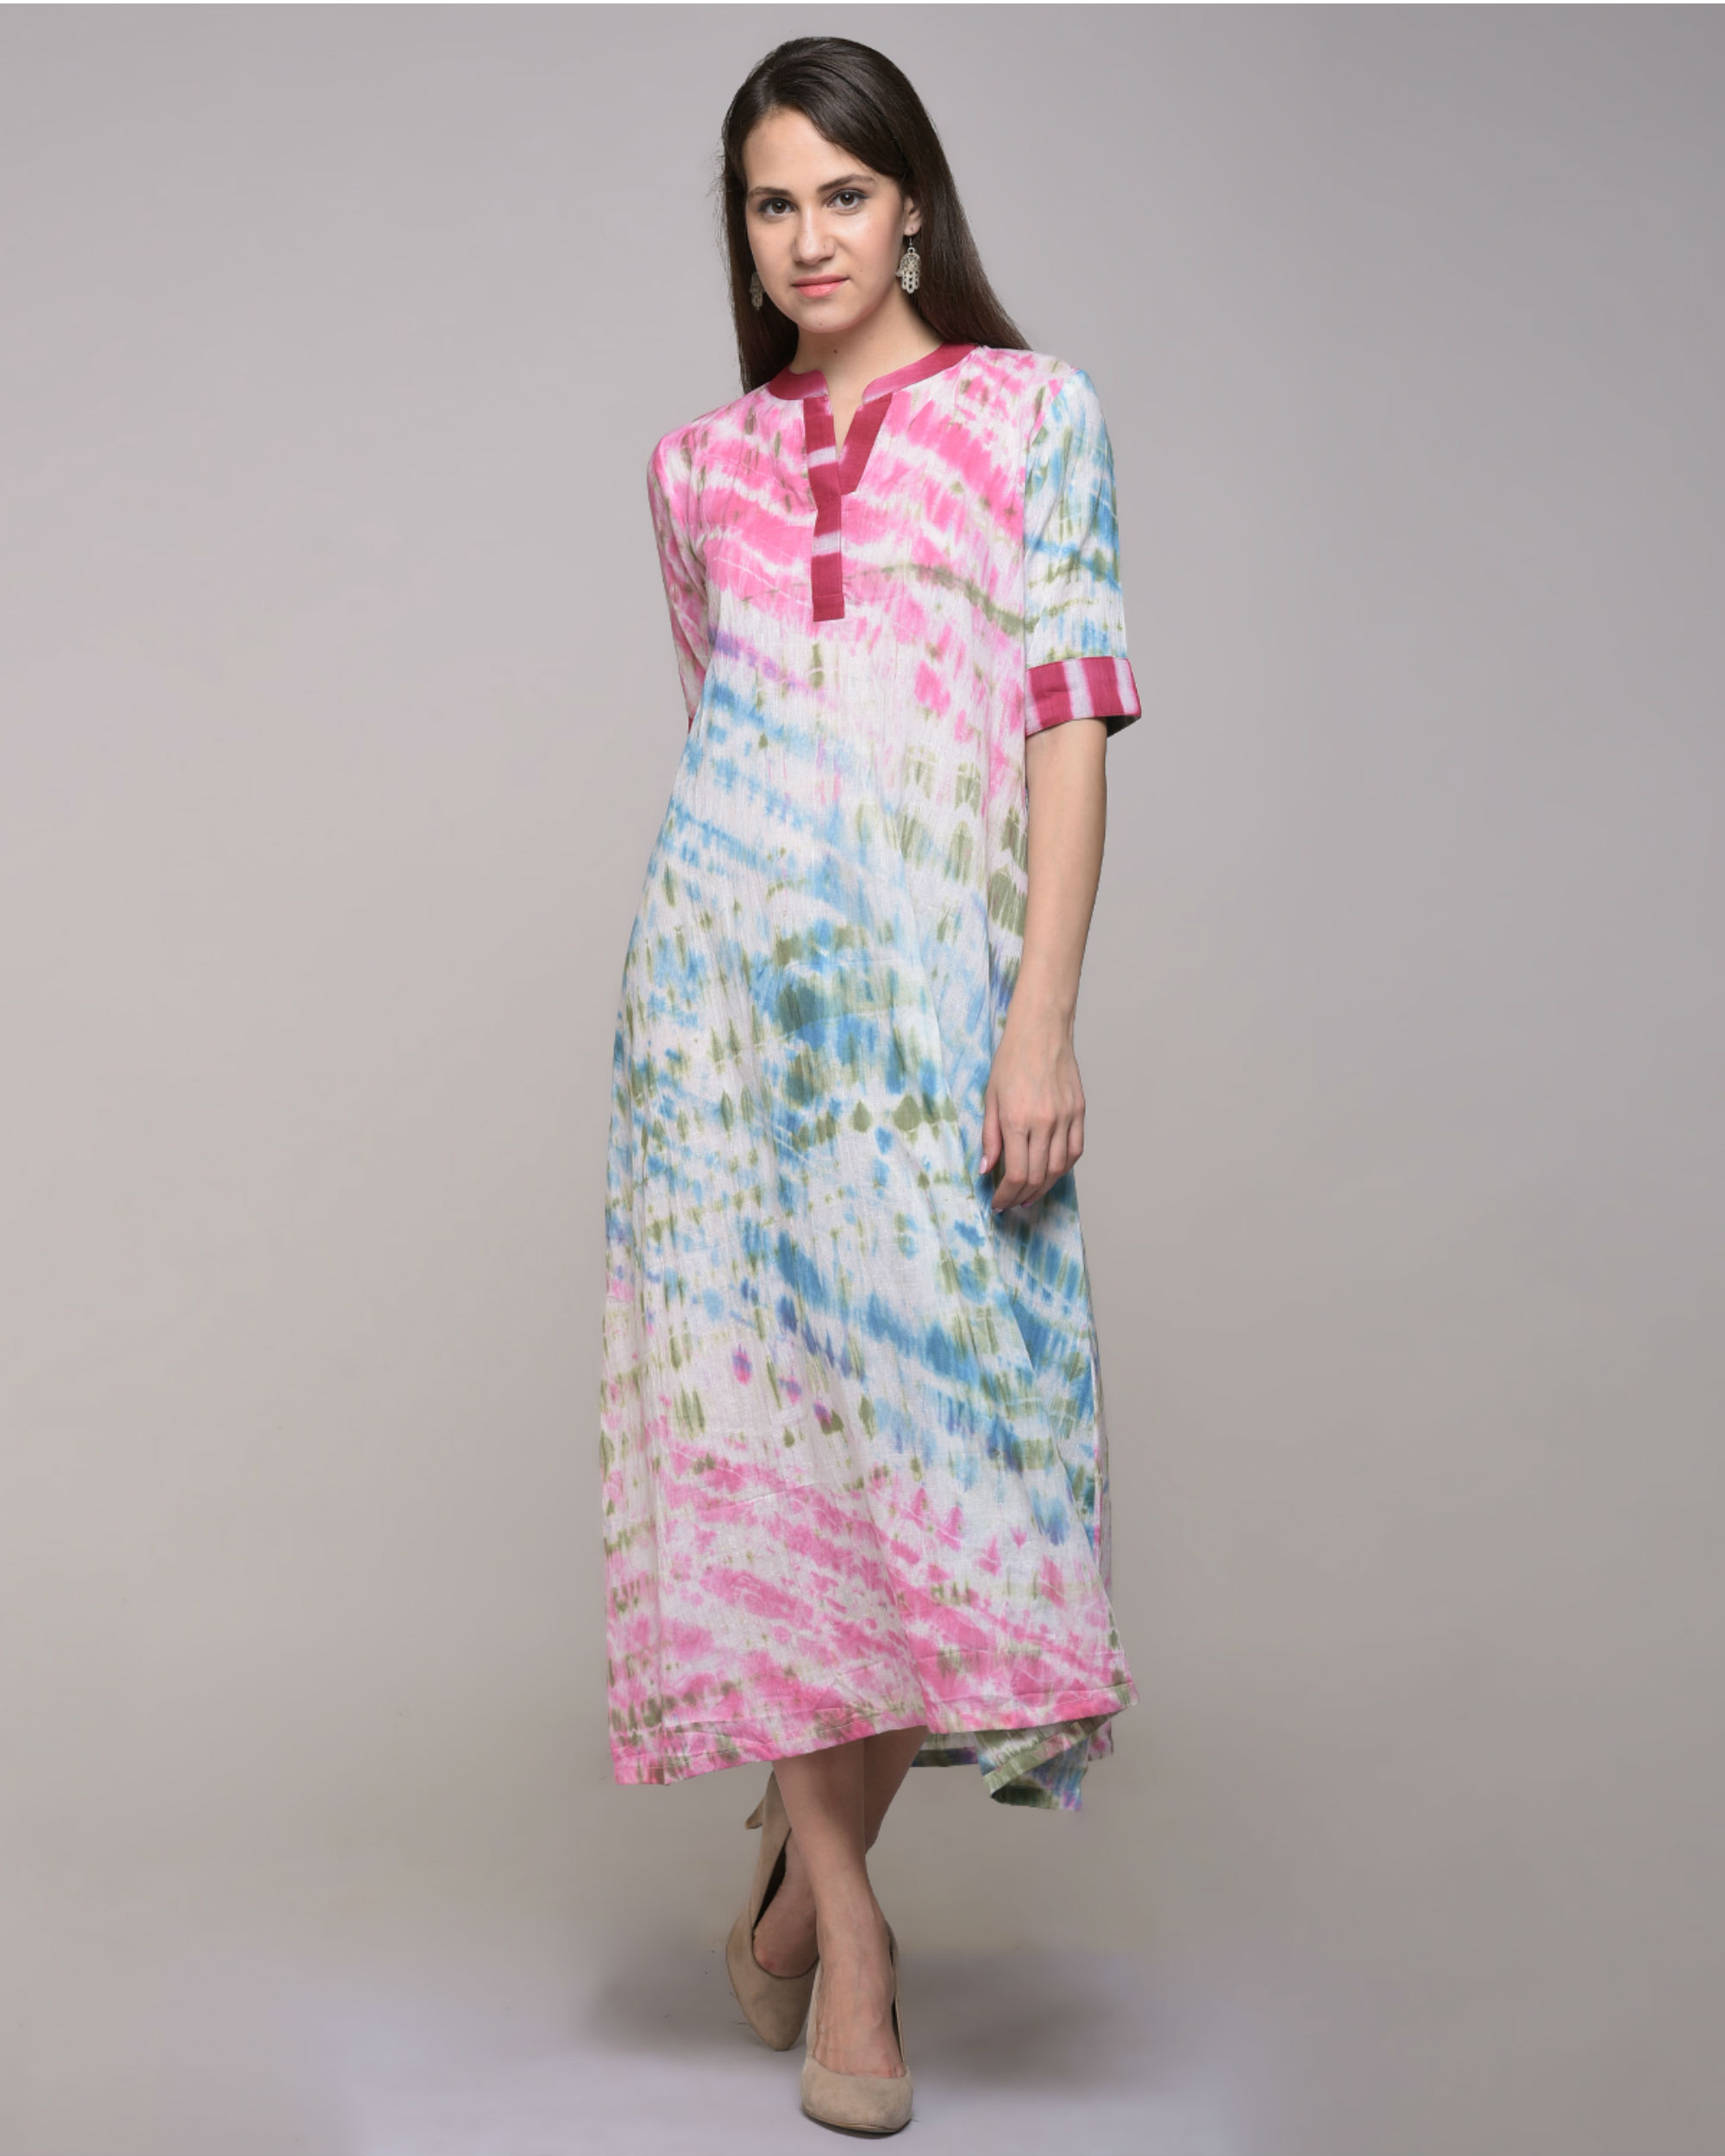 Multi color dress with belt